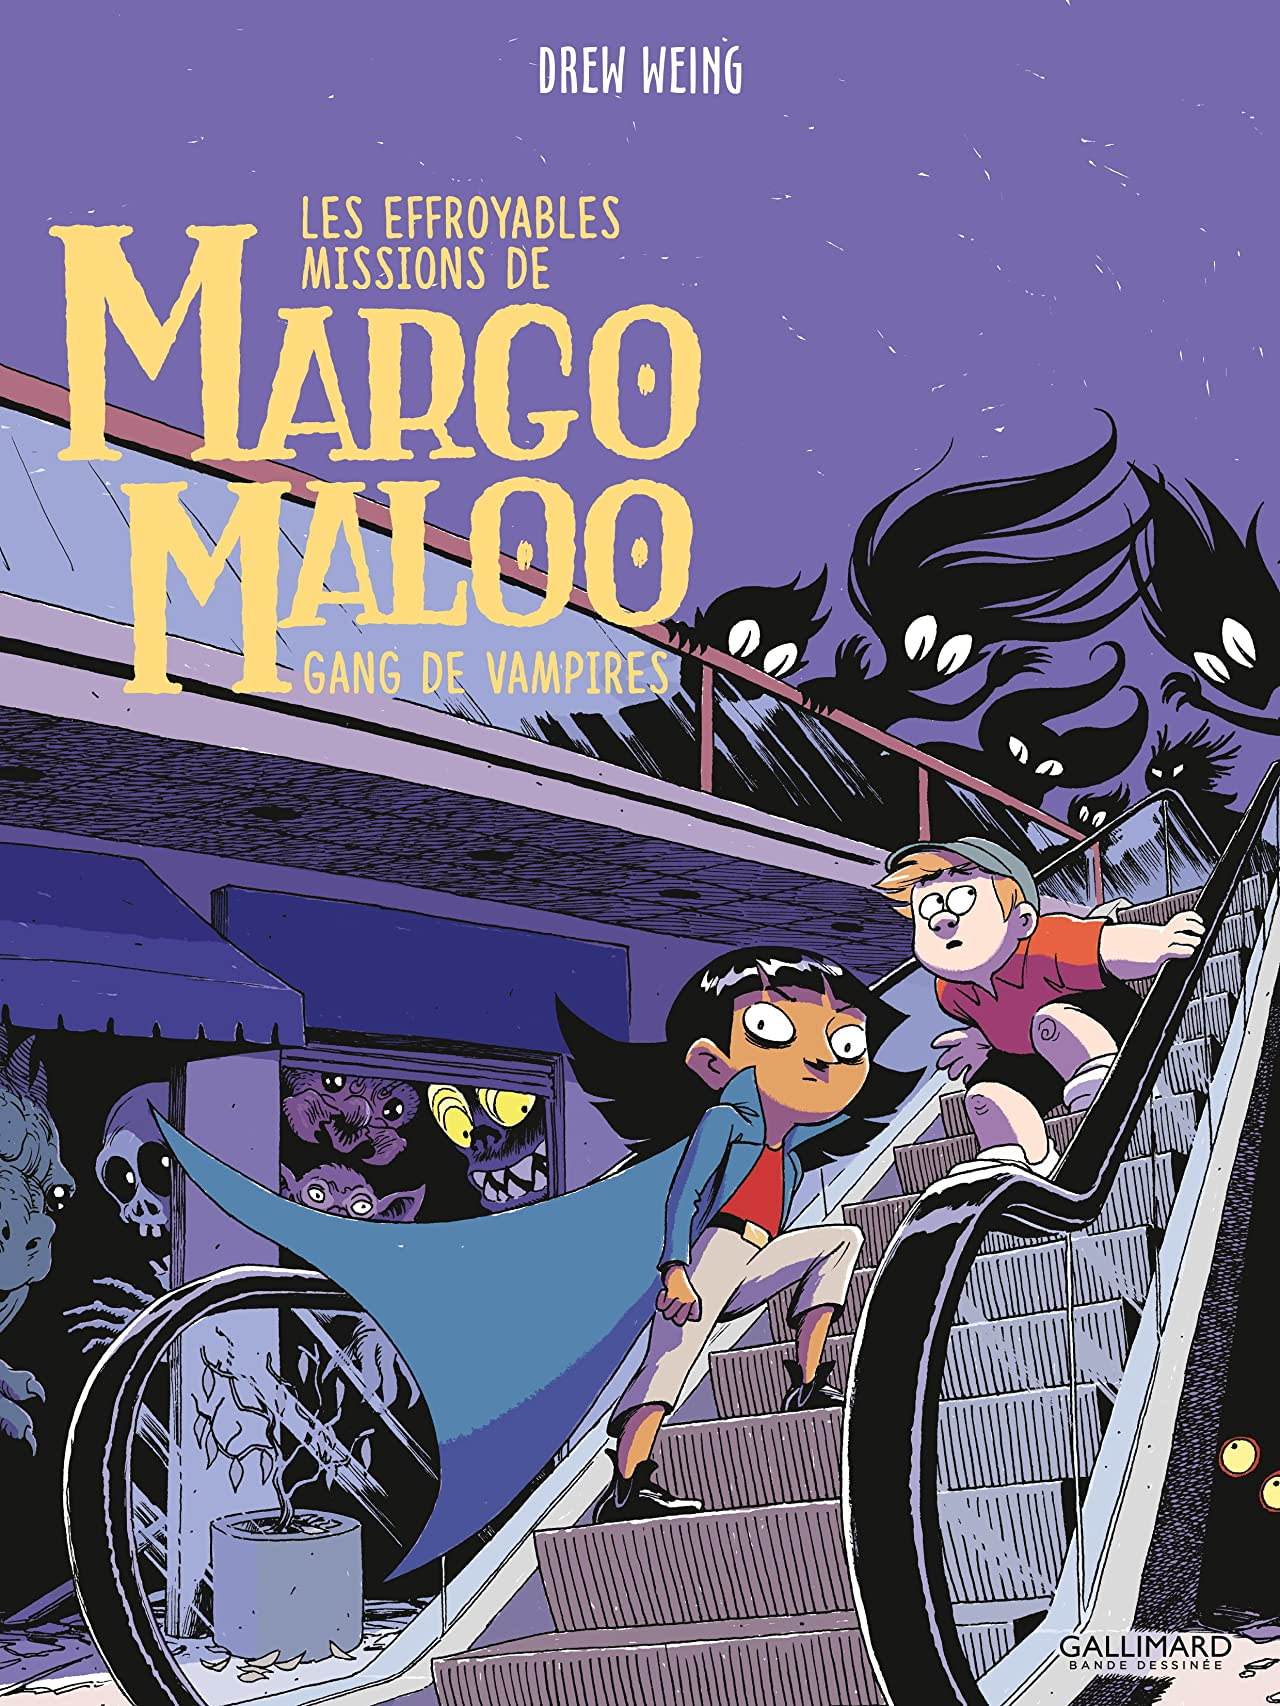 Les Effroyables Missions de Margo Maloo (Tome 2) Vol. 2: Gang of Vampires